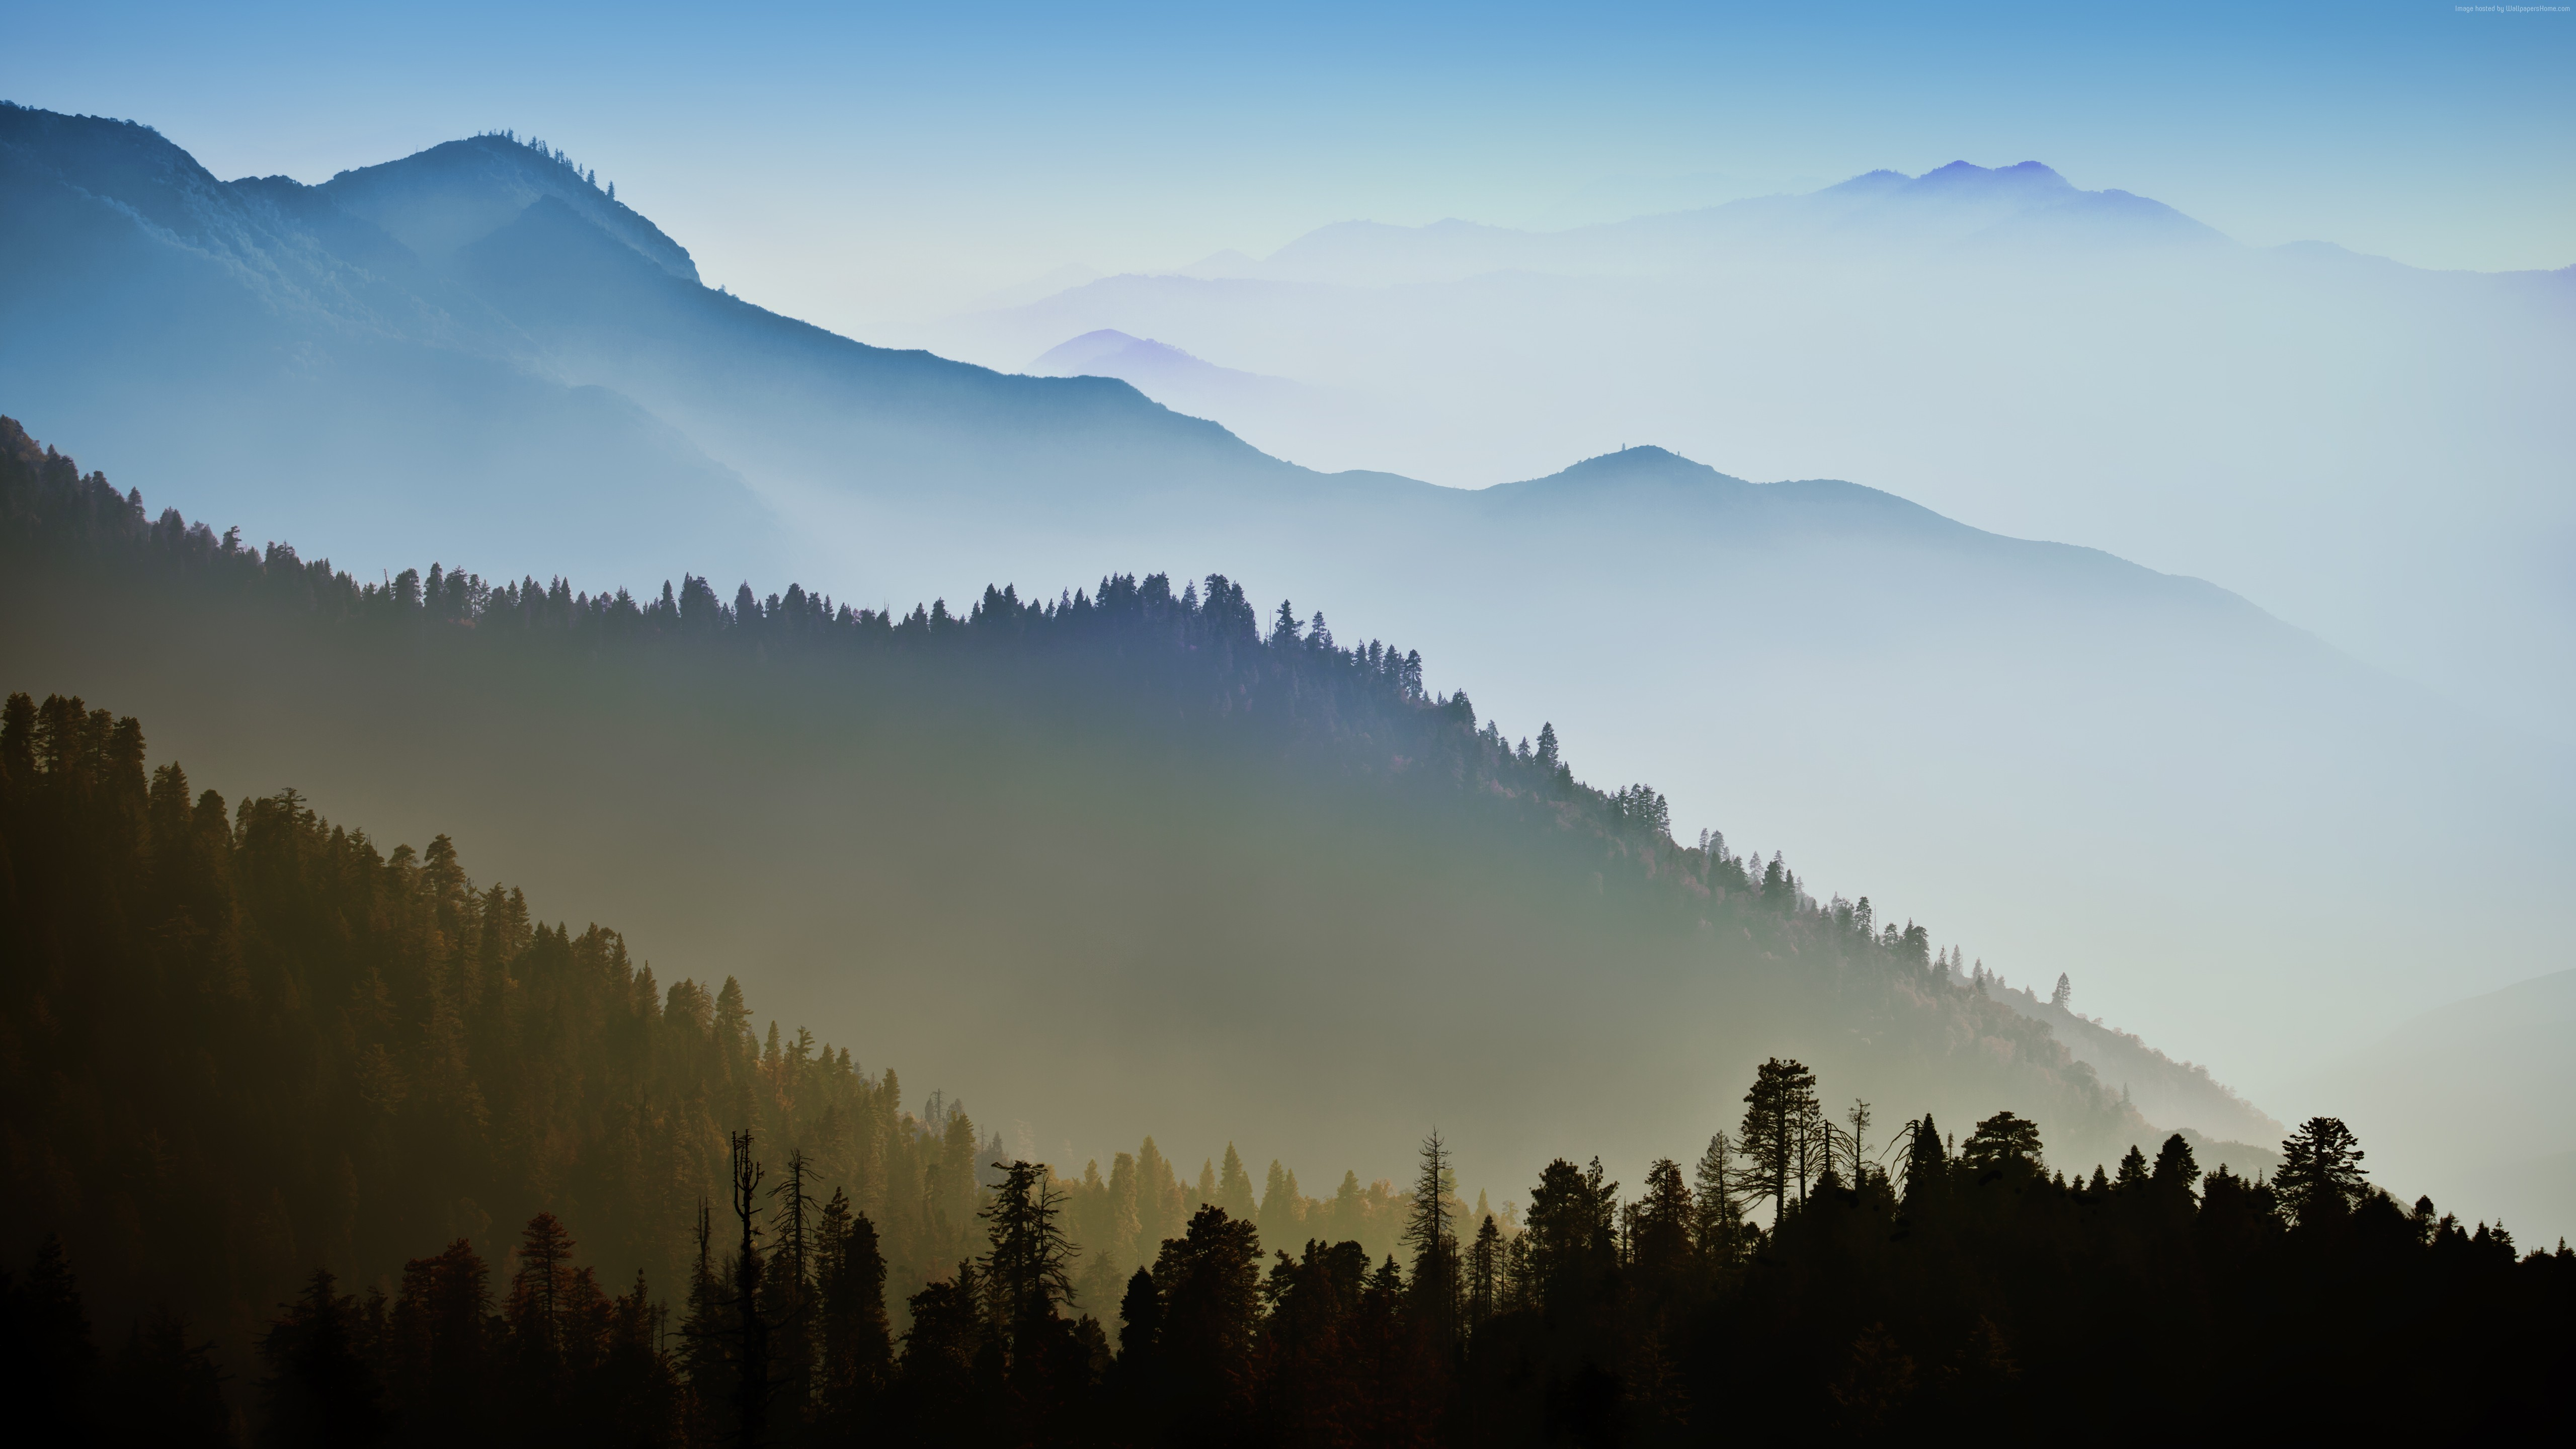 apple imac and macbook retina display wallpaper 5k smoky mountains